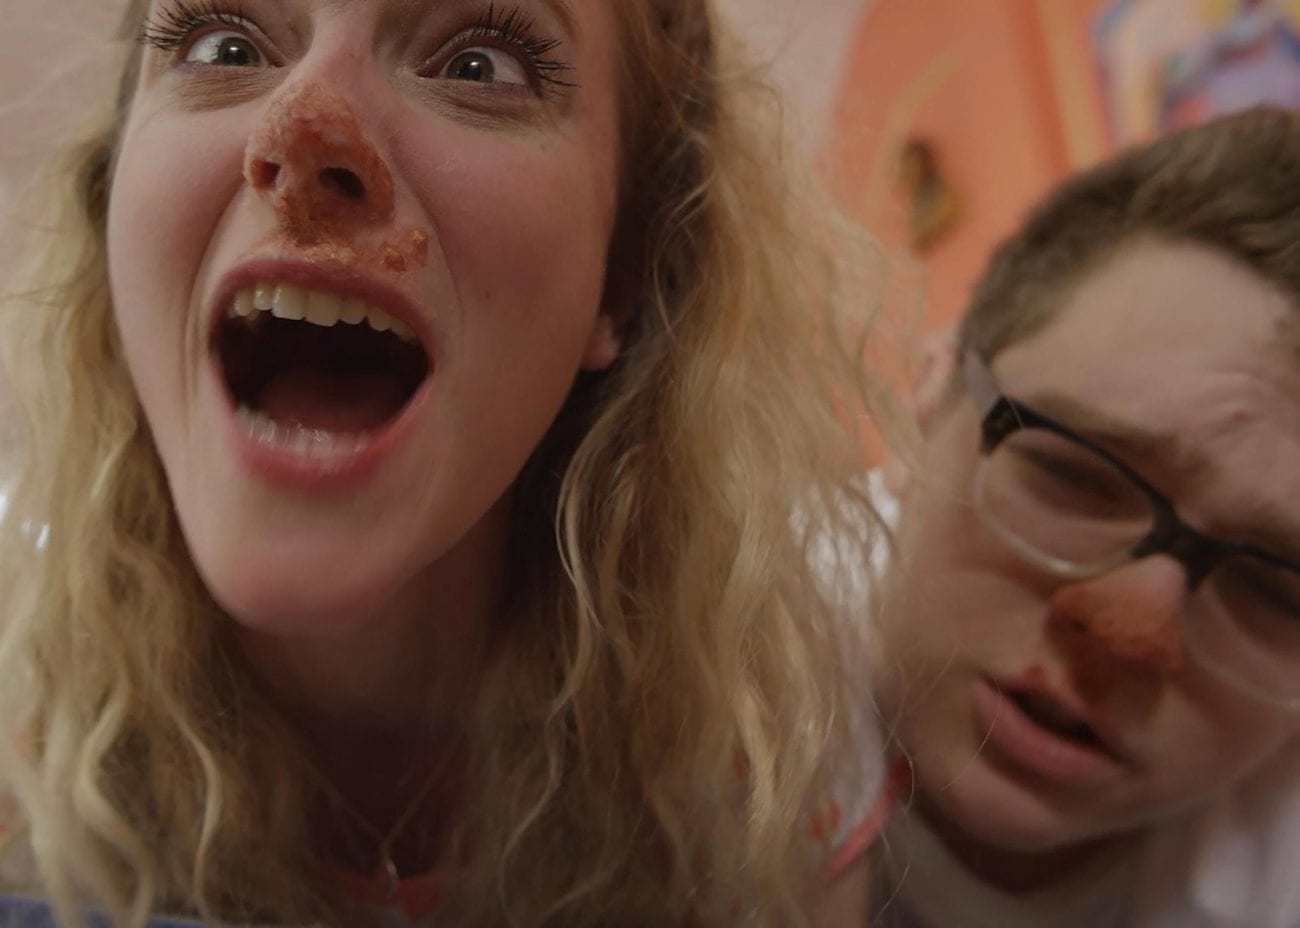 Filthy, deranged and utterly absurd, 'Assholes' follows Adam, Adah, and Aaron as they hook up and indulge in activities that'd make even Divine blush.